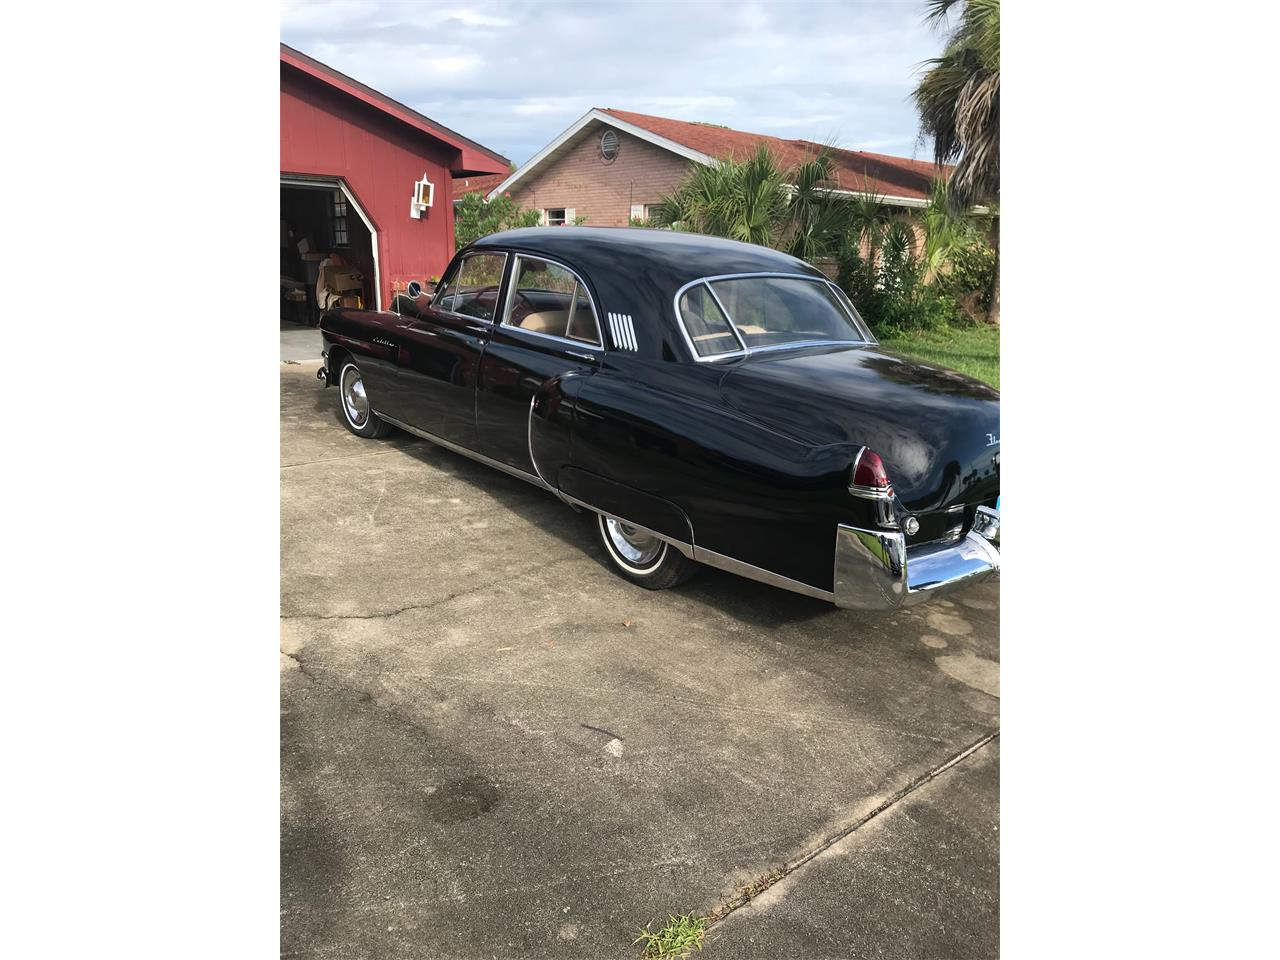 Large Picture of 1949 Cadillac 4-Dr Sedan located in Florida - $17,500.00 Offered by a Private Seller - QAJD